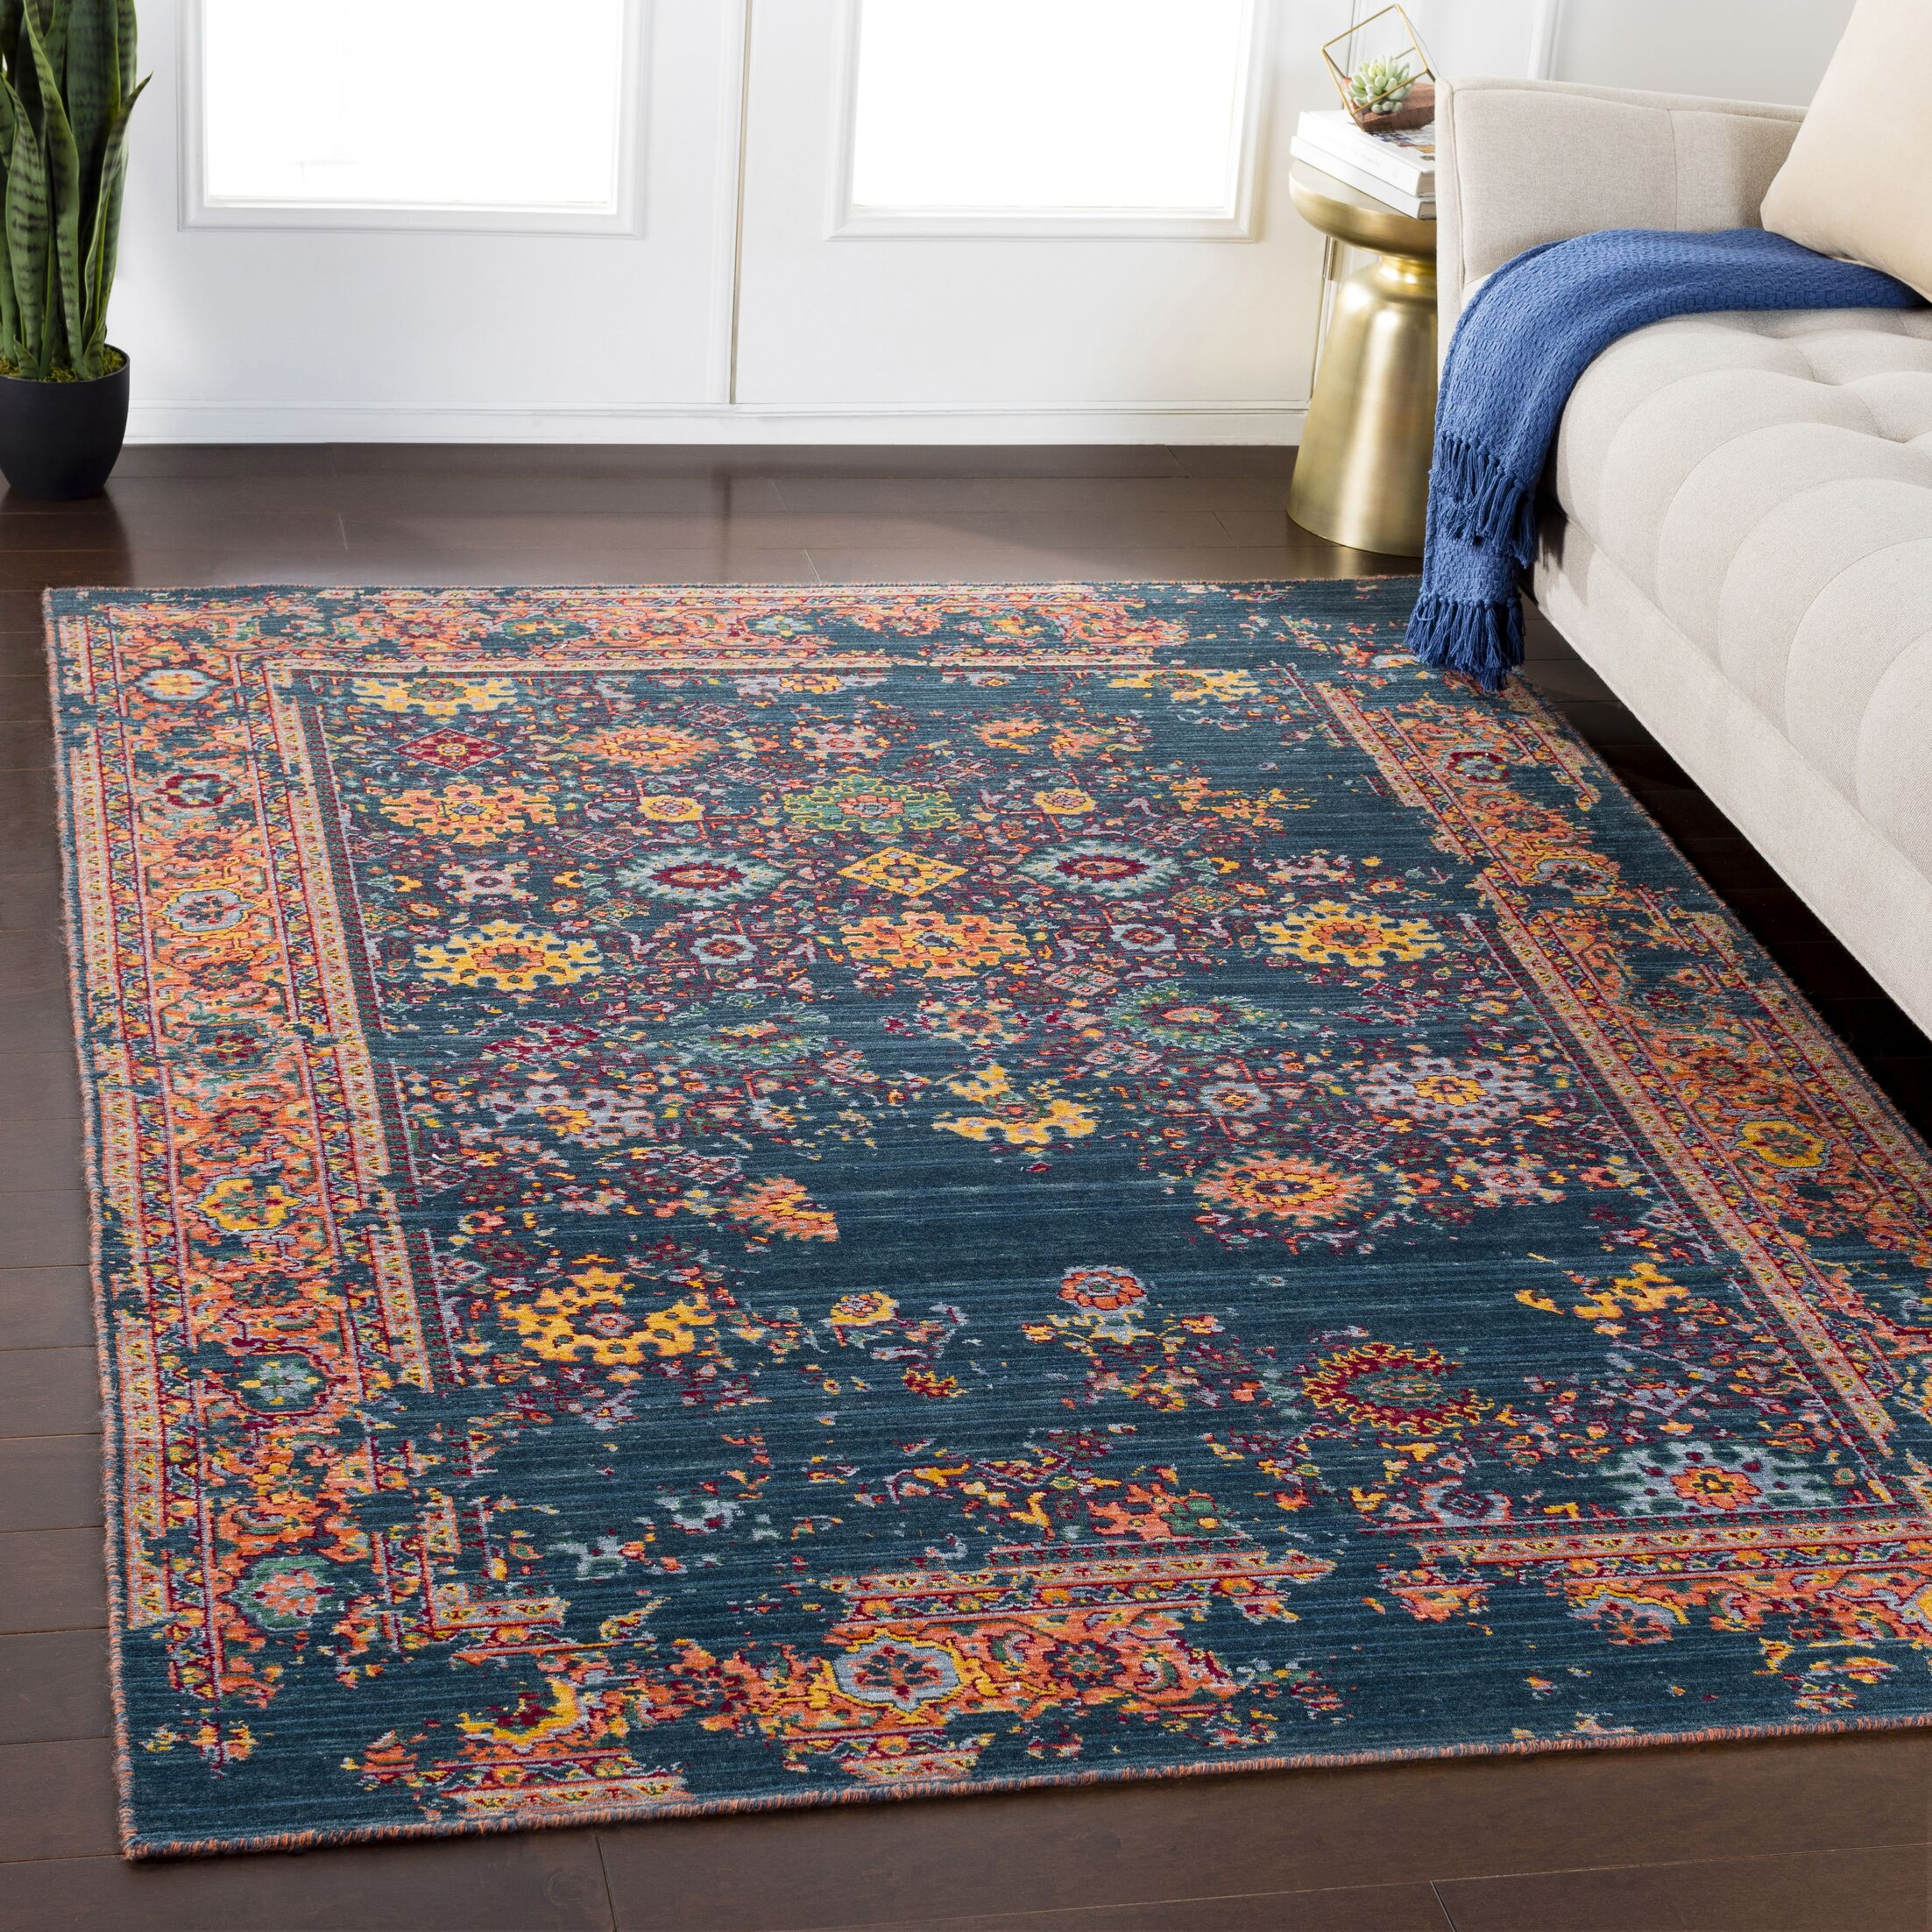 Rand Overdyed Vintage Navy/Peach Area Rug Rug Size: Rectangle 5'3